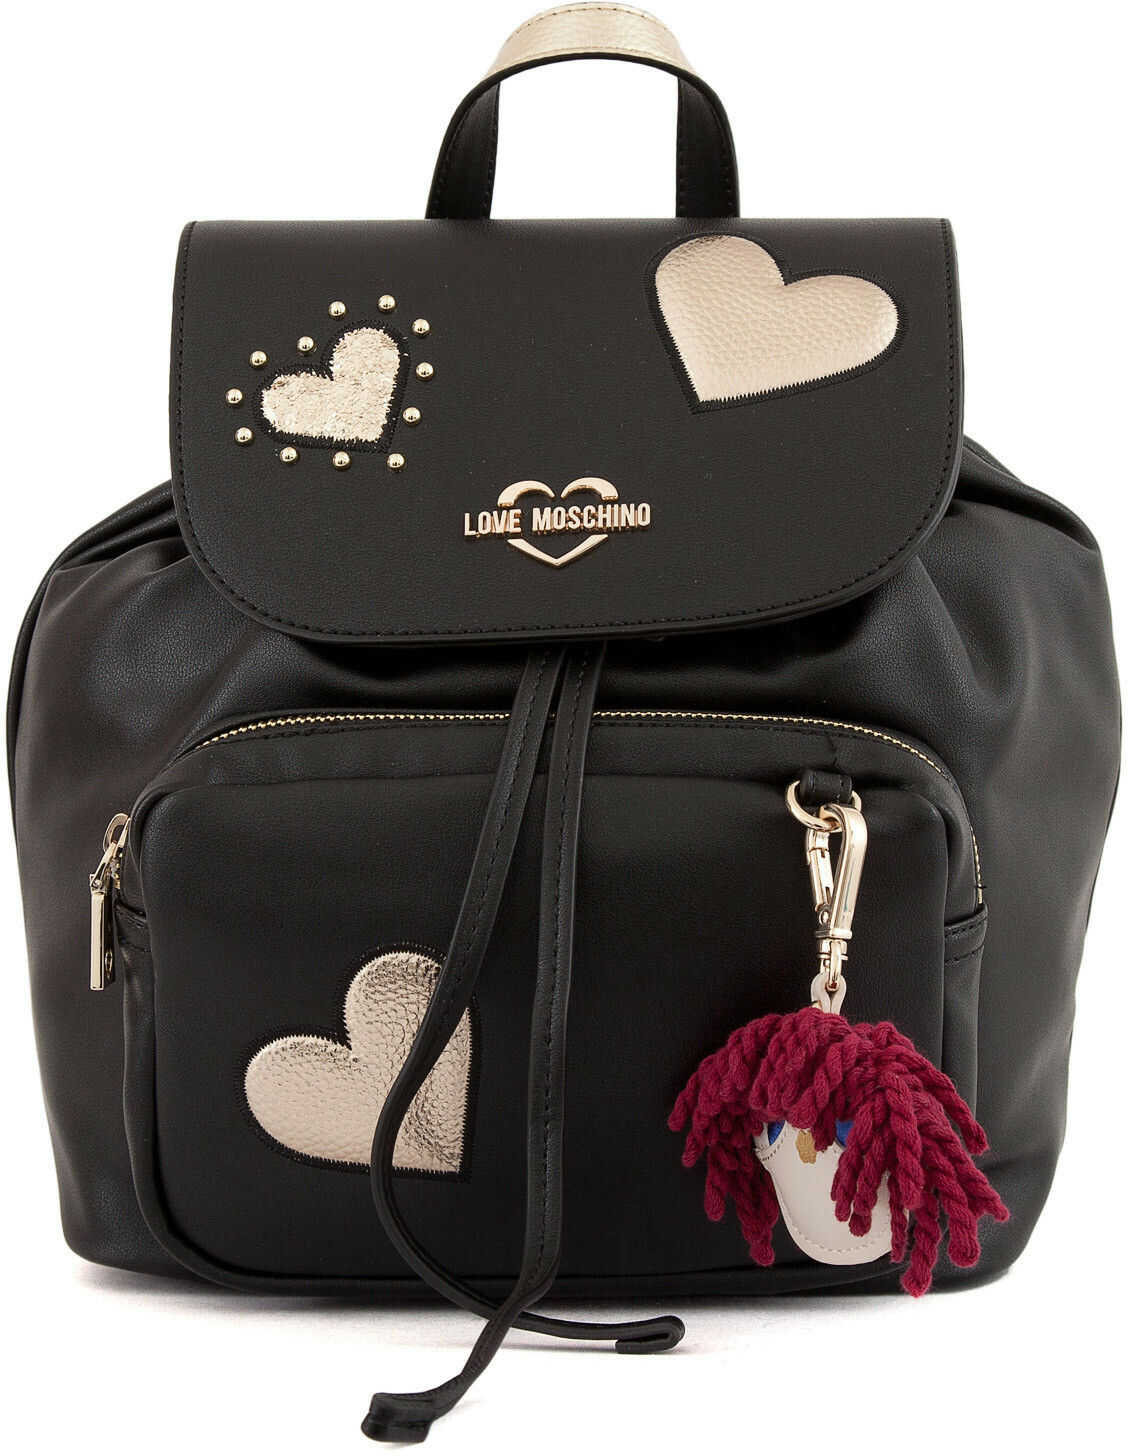 LOVE Moschino F258EDCD BLACK